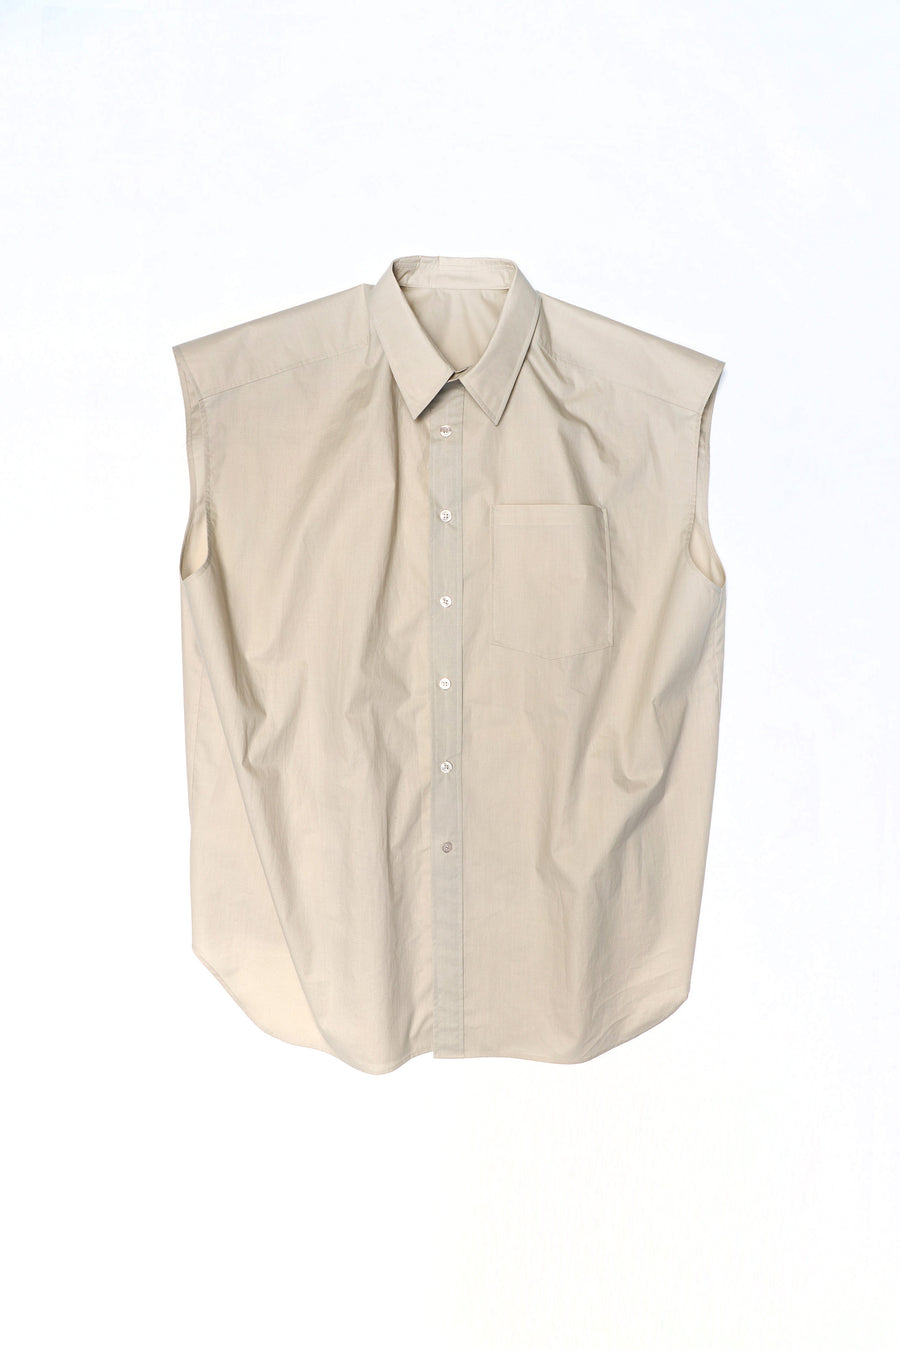 BEIGE WIDE SHOULDER SHIRT